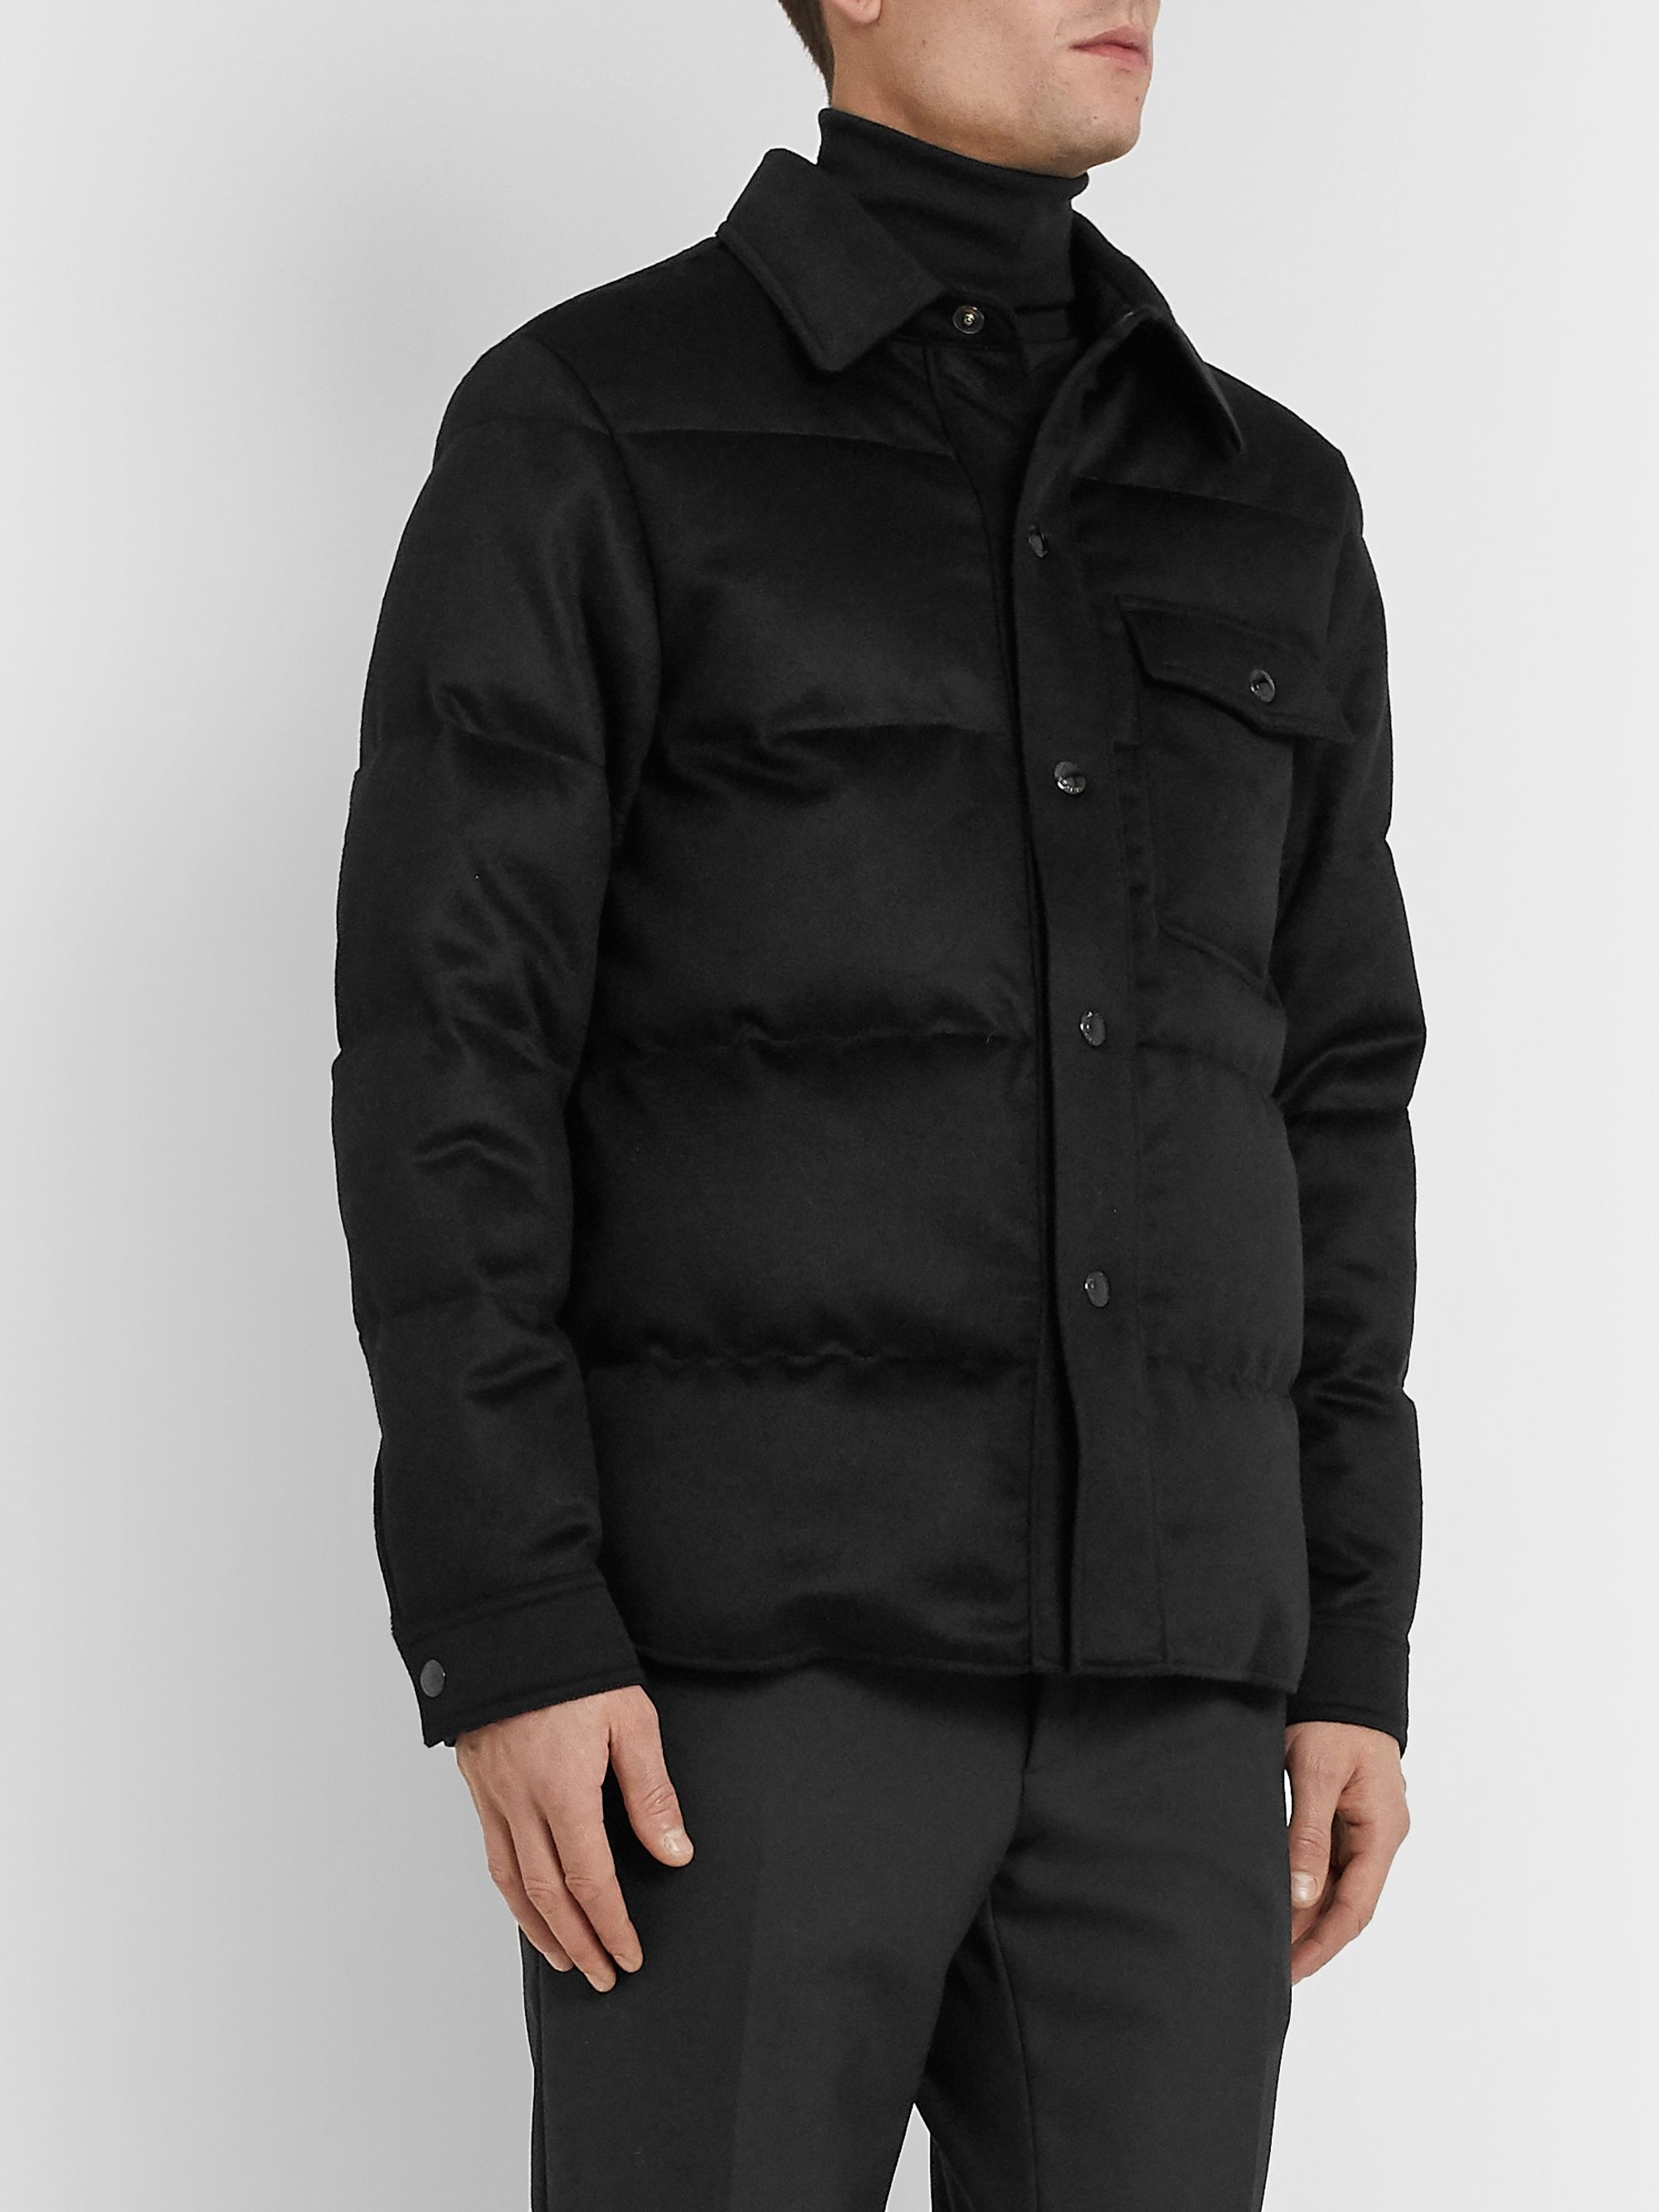 TOM FORD Slim-Fit Quilted Cashmere Jacket